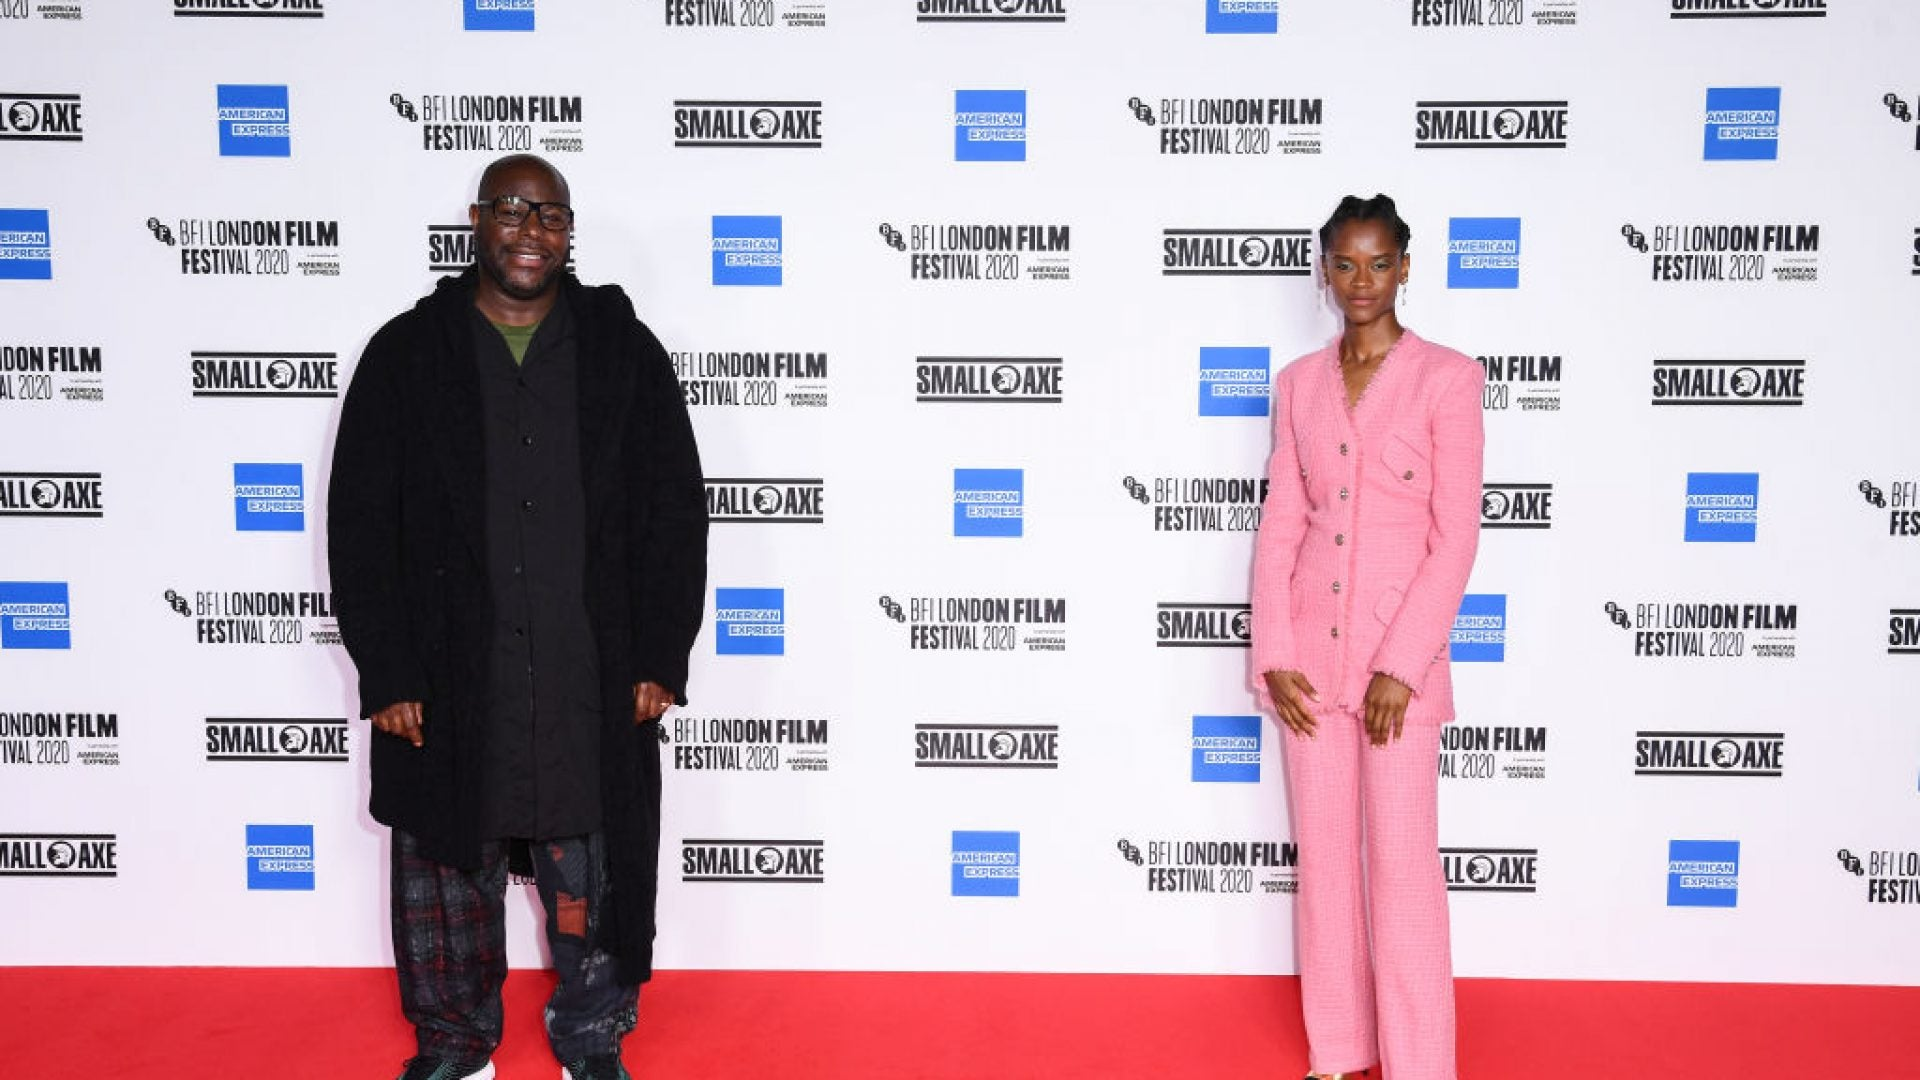 Letitia Wright And Steve McQueen Headline Socially Distant BFI London Film Festival